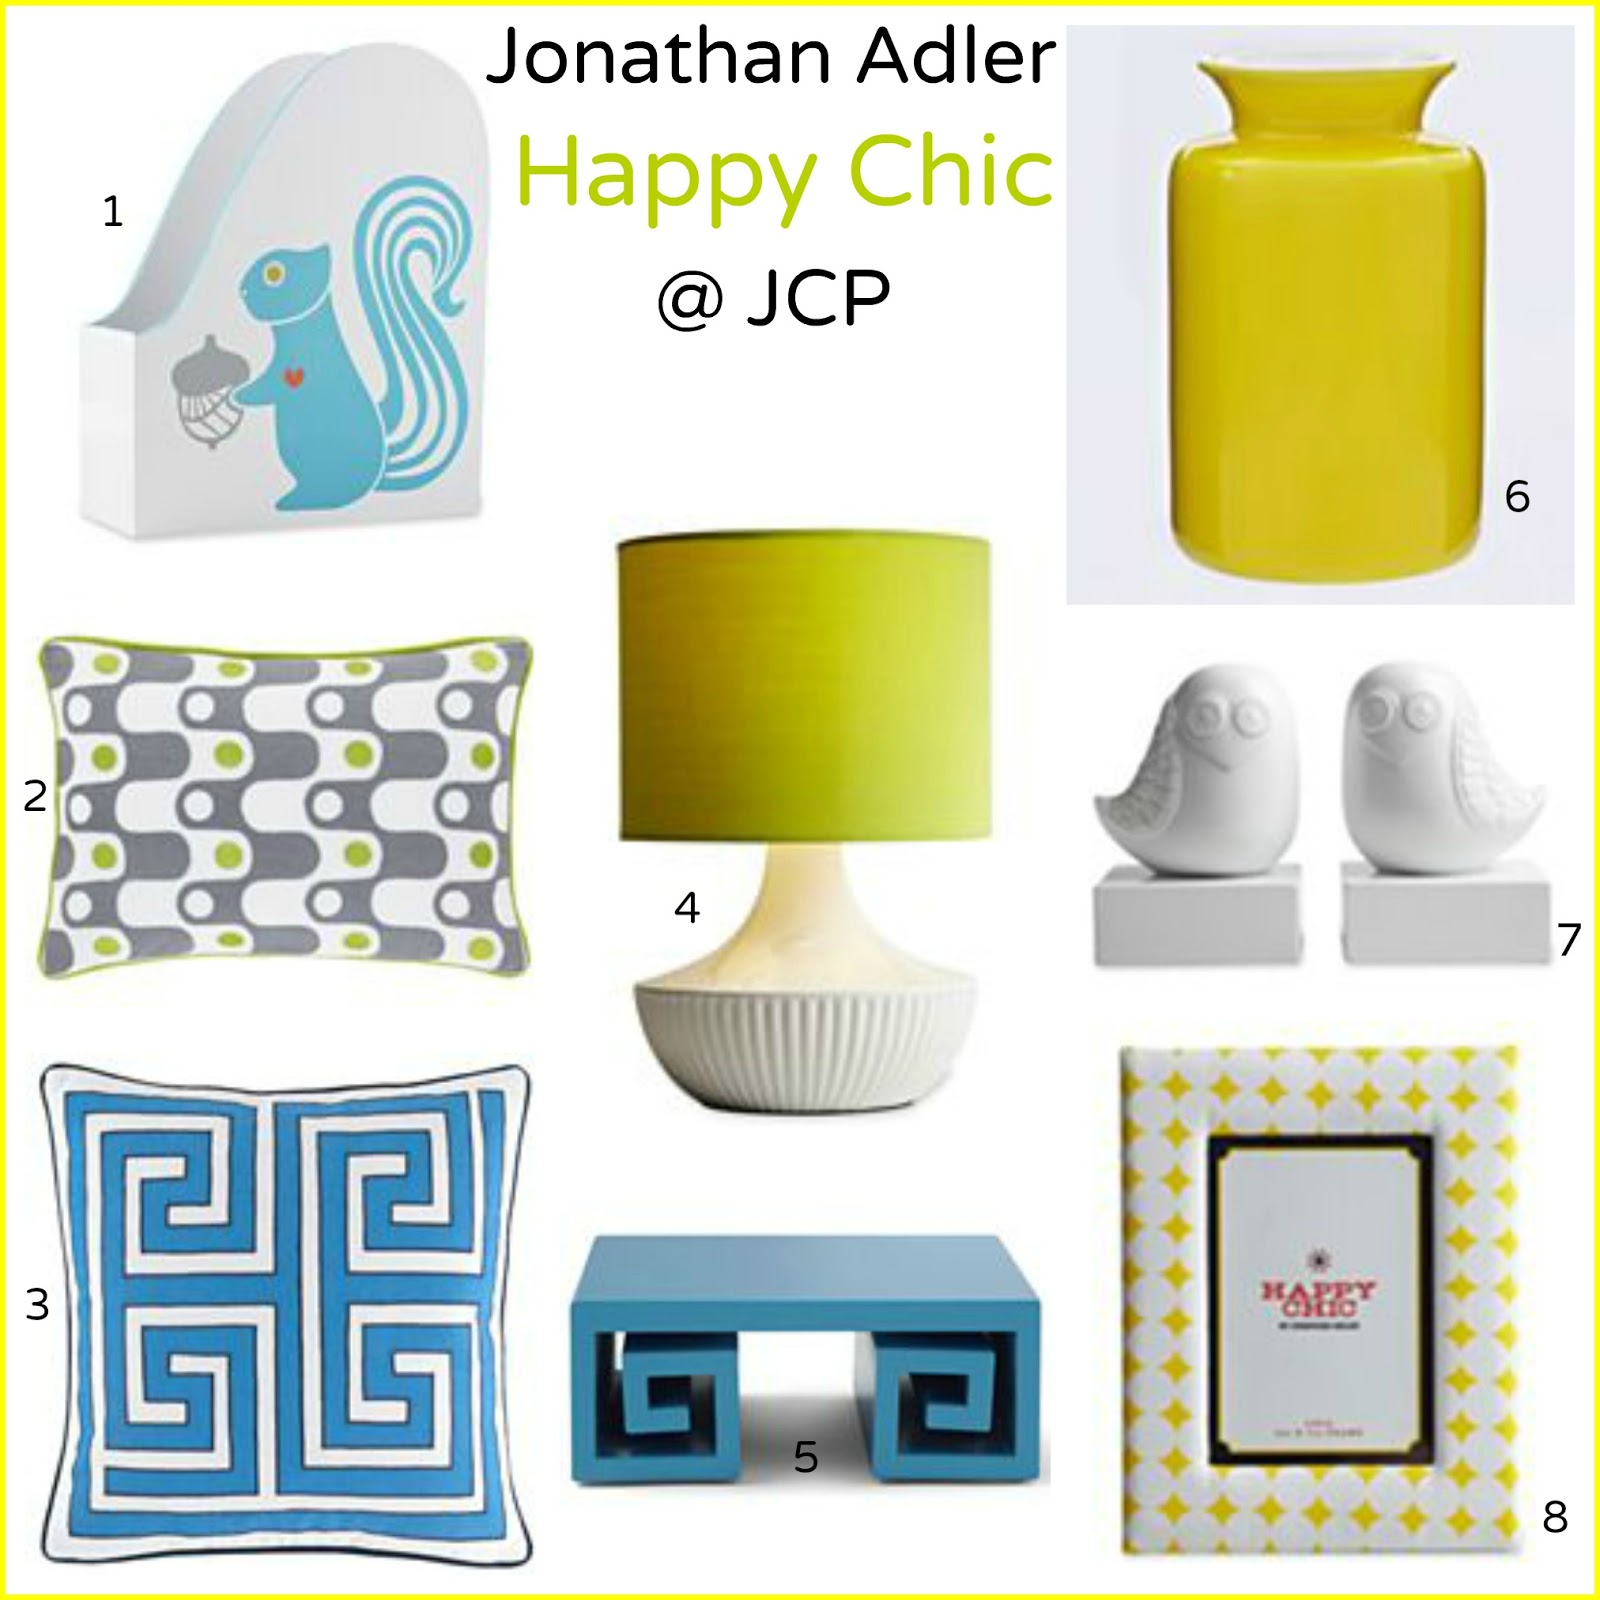 Tracys Notebook Of Style Happy Chic By Jonathan Adler At Jcp